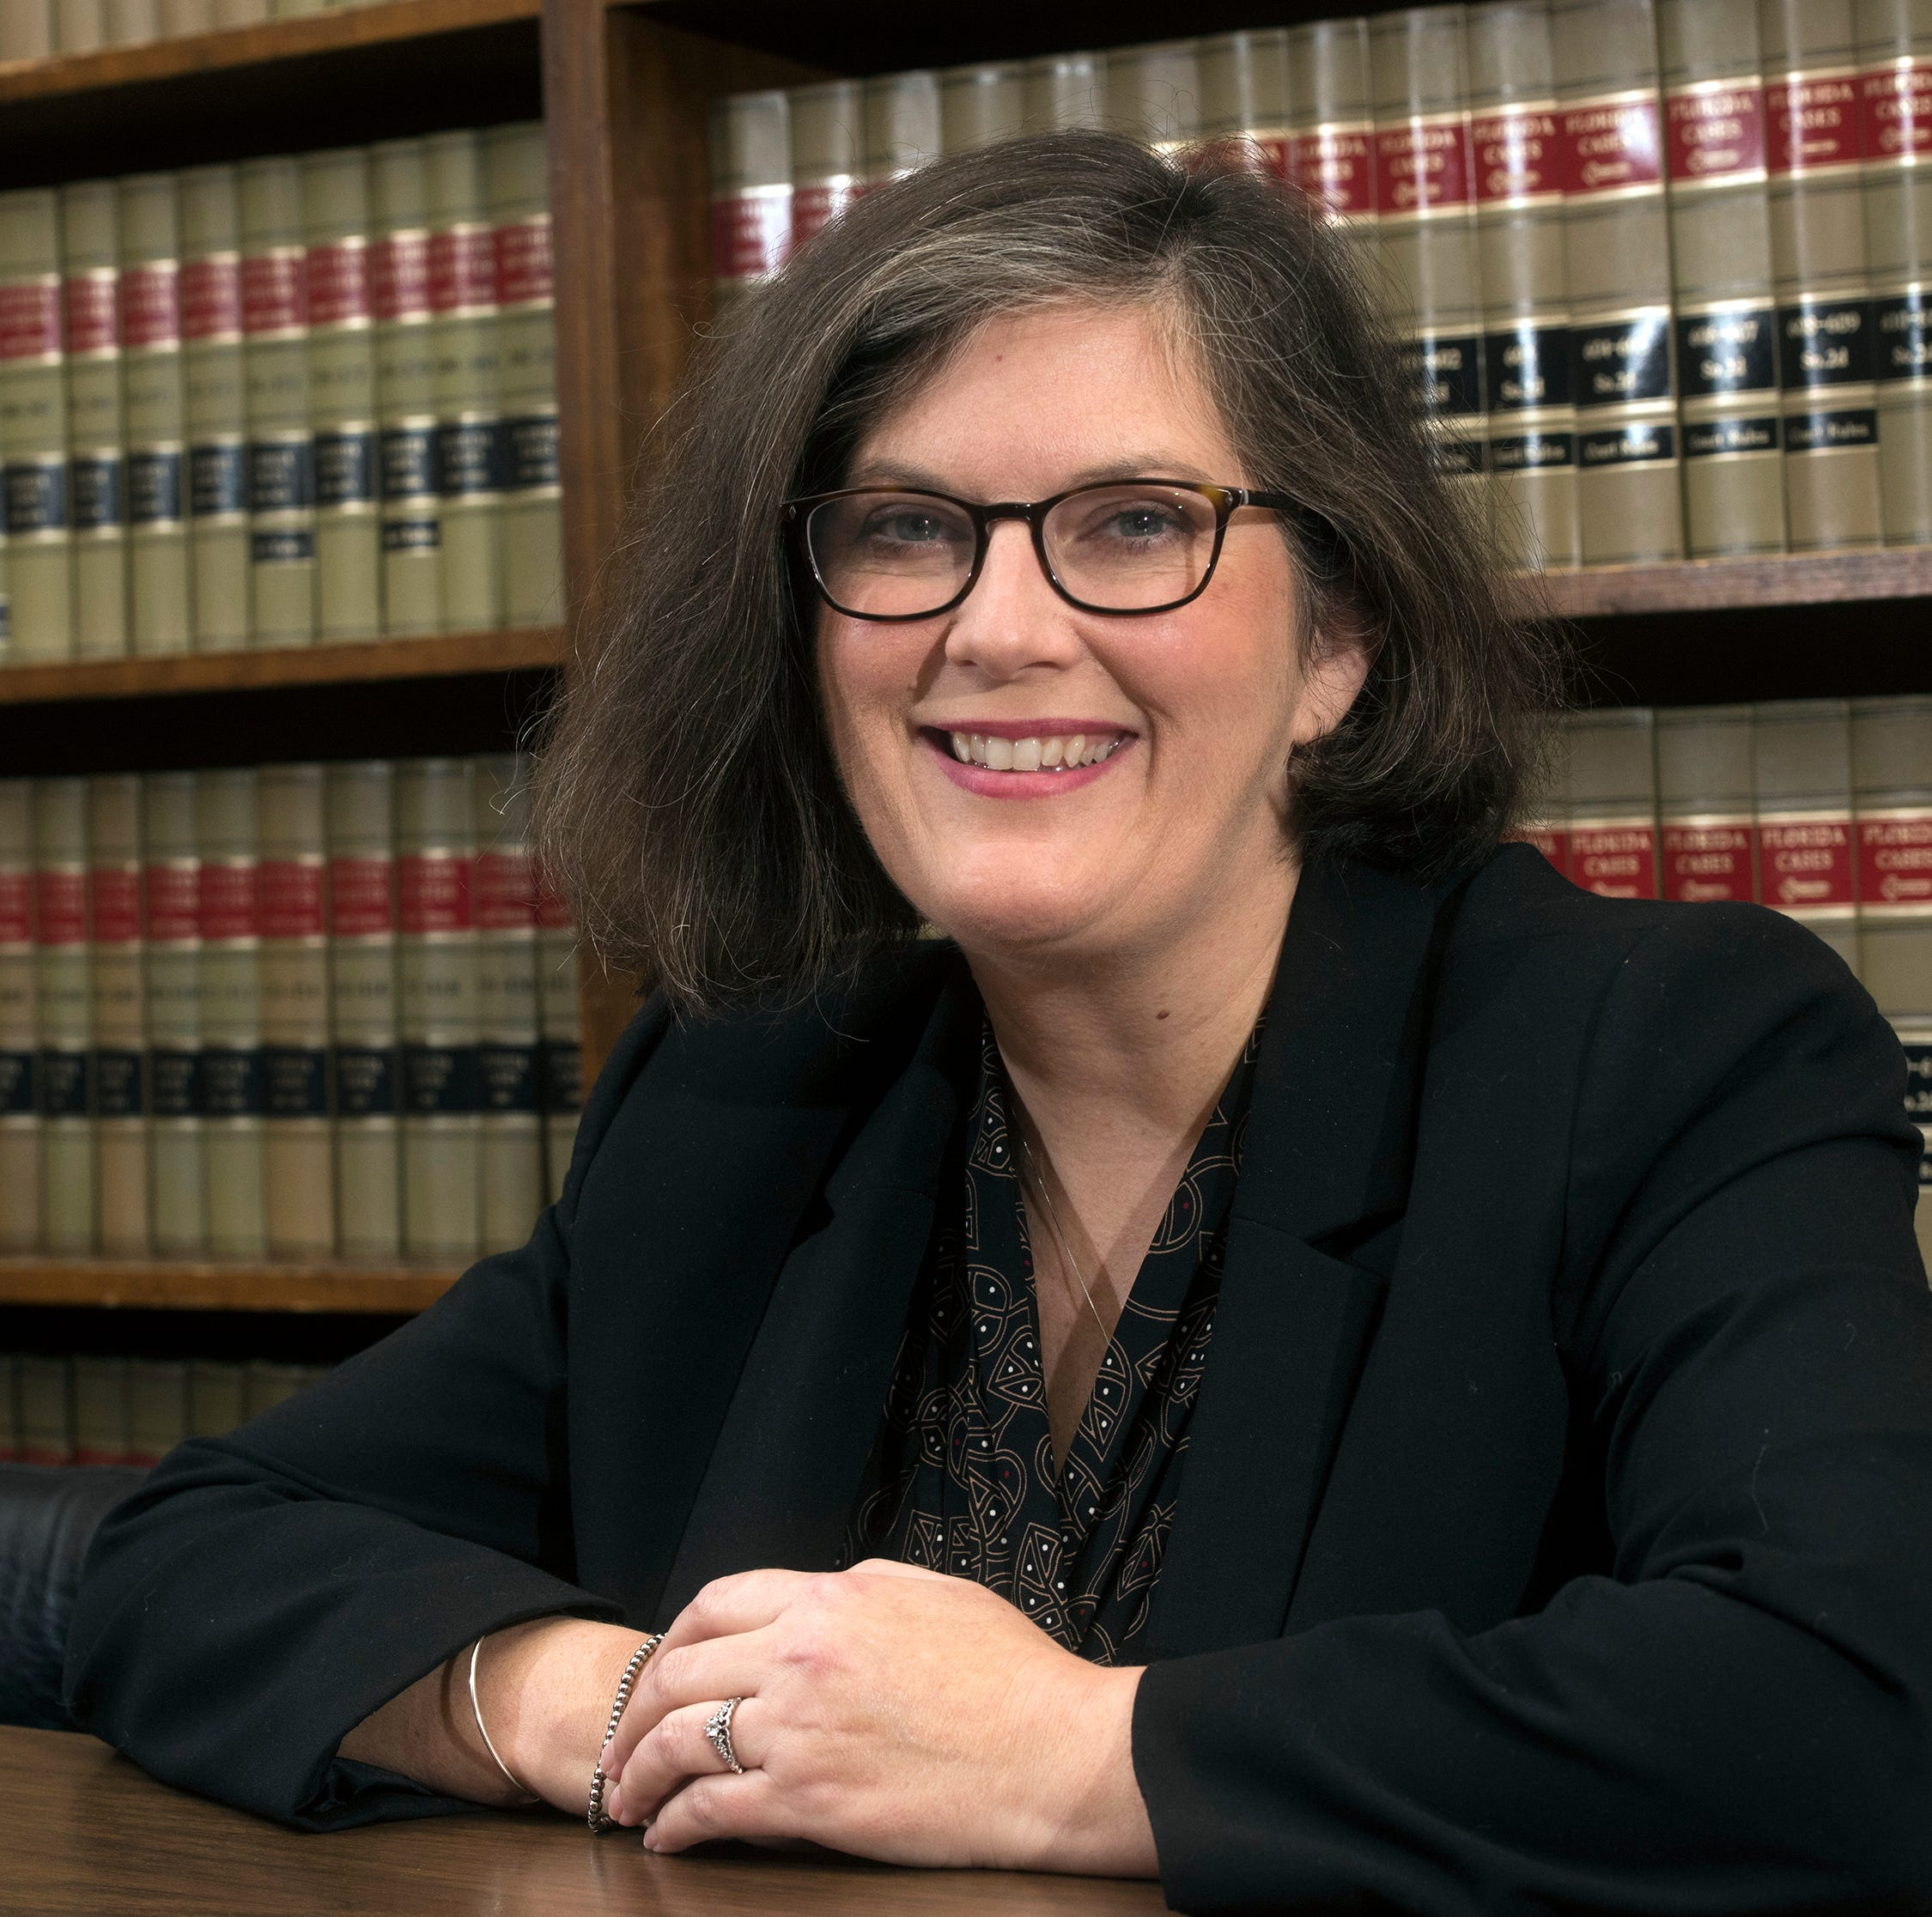 Pensacola hires Milton Mayor Heather Lindsay as an assistant city attorney